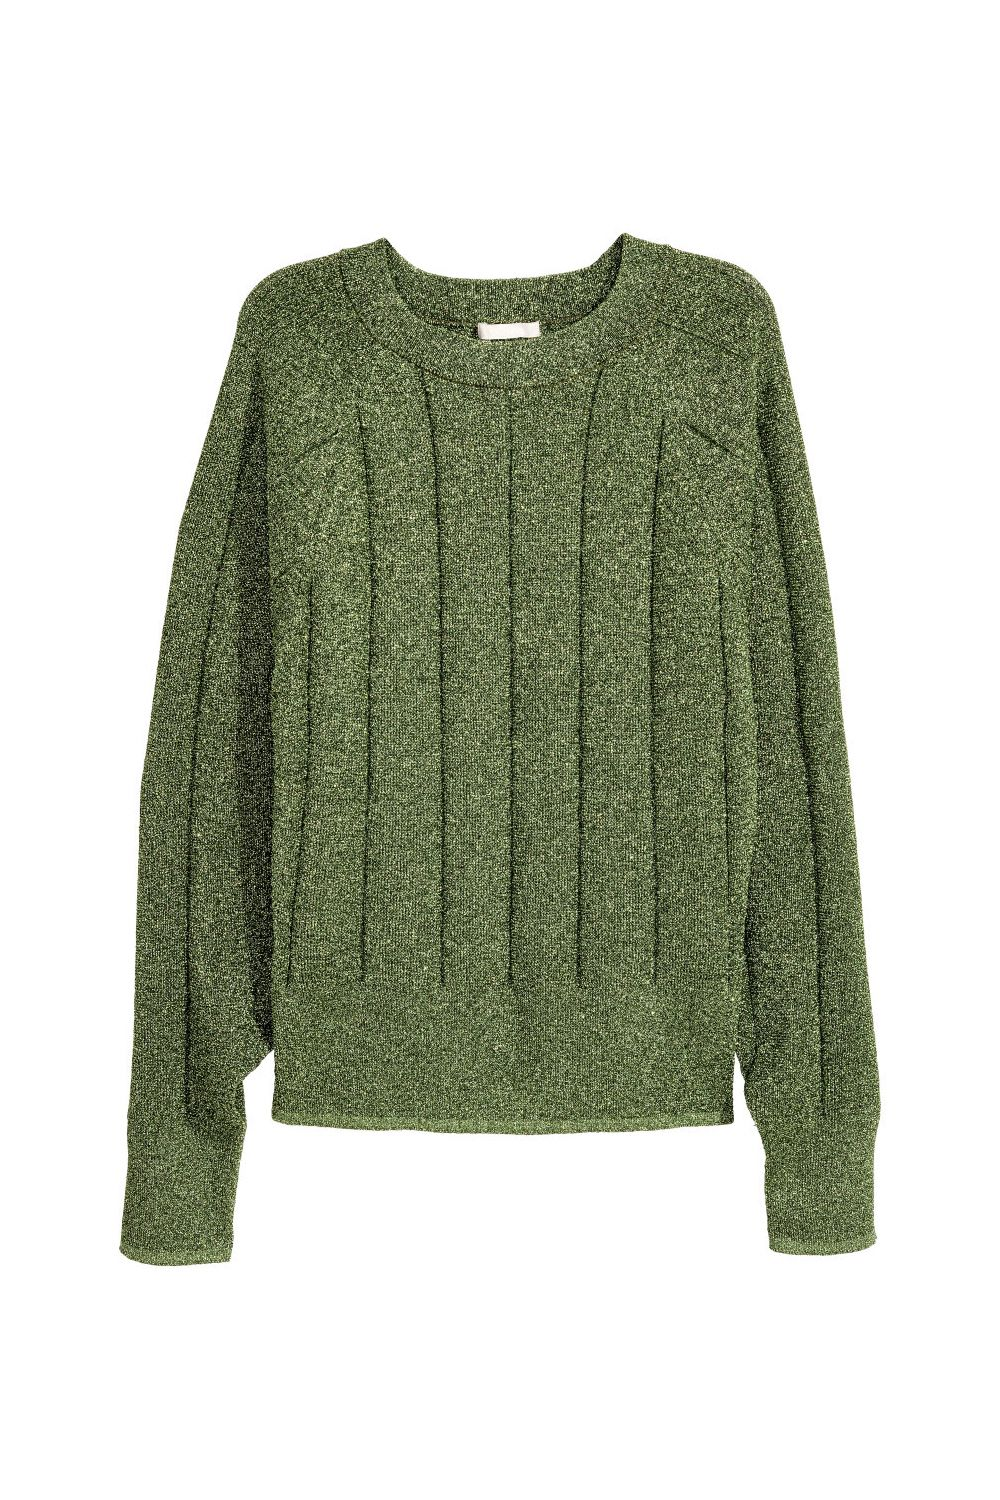 """<p>Then: """"But I want the sweater with GREEN GLITTER, MOOOMMMMM."""" Now:<span class=""""redactor-invisible-space"""" data-verified=""""redactor"""" data-redactor-tag=""""span"""" data-redactor-class=""""redactor-invisible-space"""">You got it.</span><br></p><p><em data-redactor-tag=""""em"""" data-verified=""""redactor"""">H&M, $50</em></p><p><strong data-redactor-tag=""""strong"""" data-verified=""""redactor"""">BUY IT: <a href=""""http://www.hm.com/us/product/75845?article=75845-A"""" target=""""_blank"""" data-tracking-id=""""recirc-text-link"""">hm.com</a>.</strong></p>"""